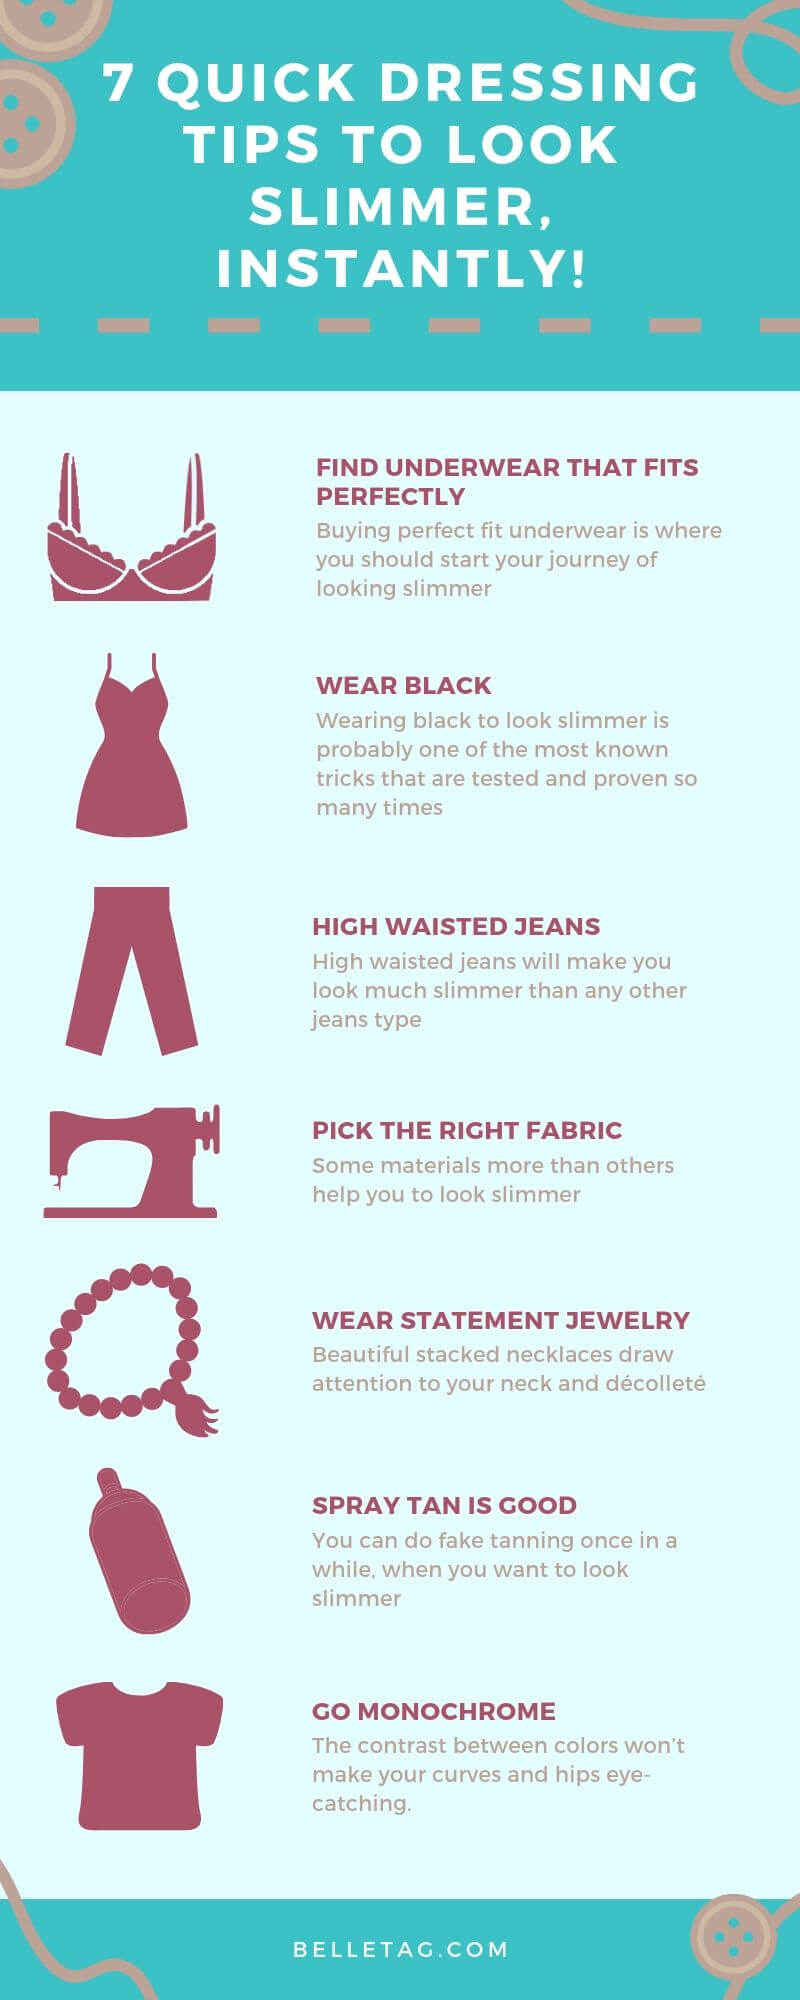 How to look slimmer in a dress? A timeless question that bothers many girls around the world. An insightful #infographic with some of the best-proven tips that you should try. #lookingslimmer #outfittips #slimlook #lookingthinner